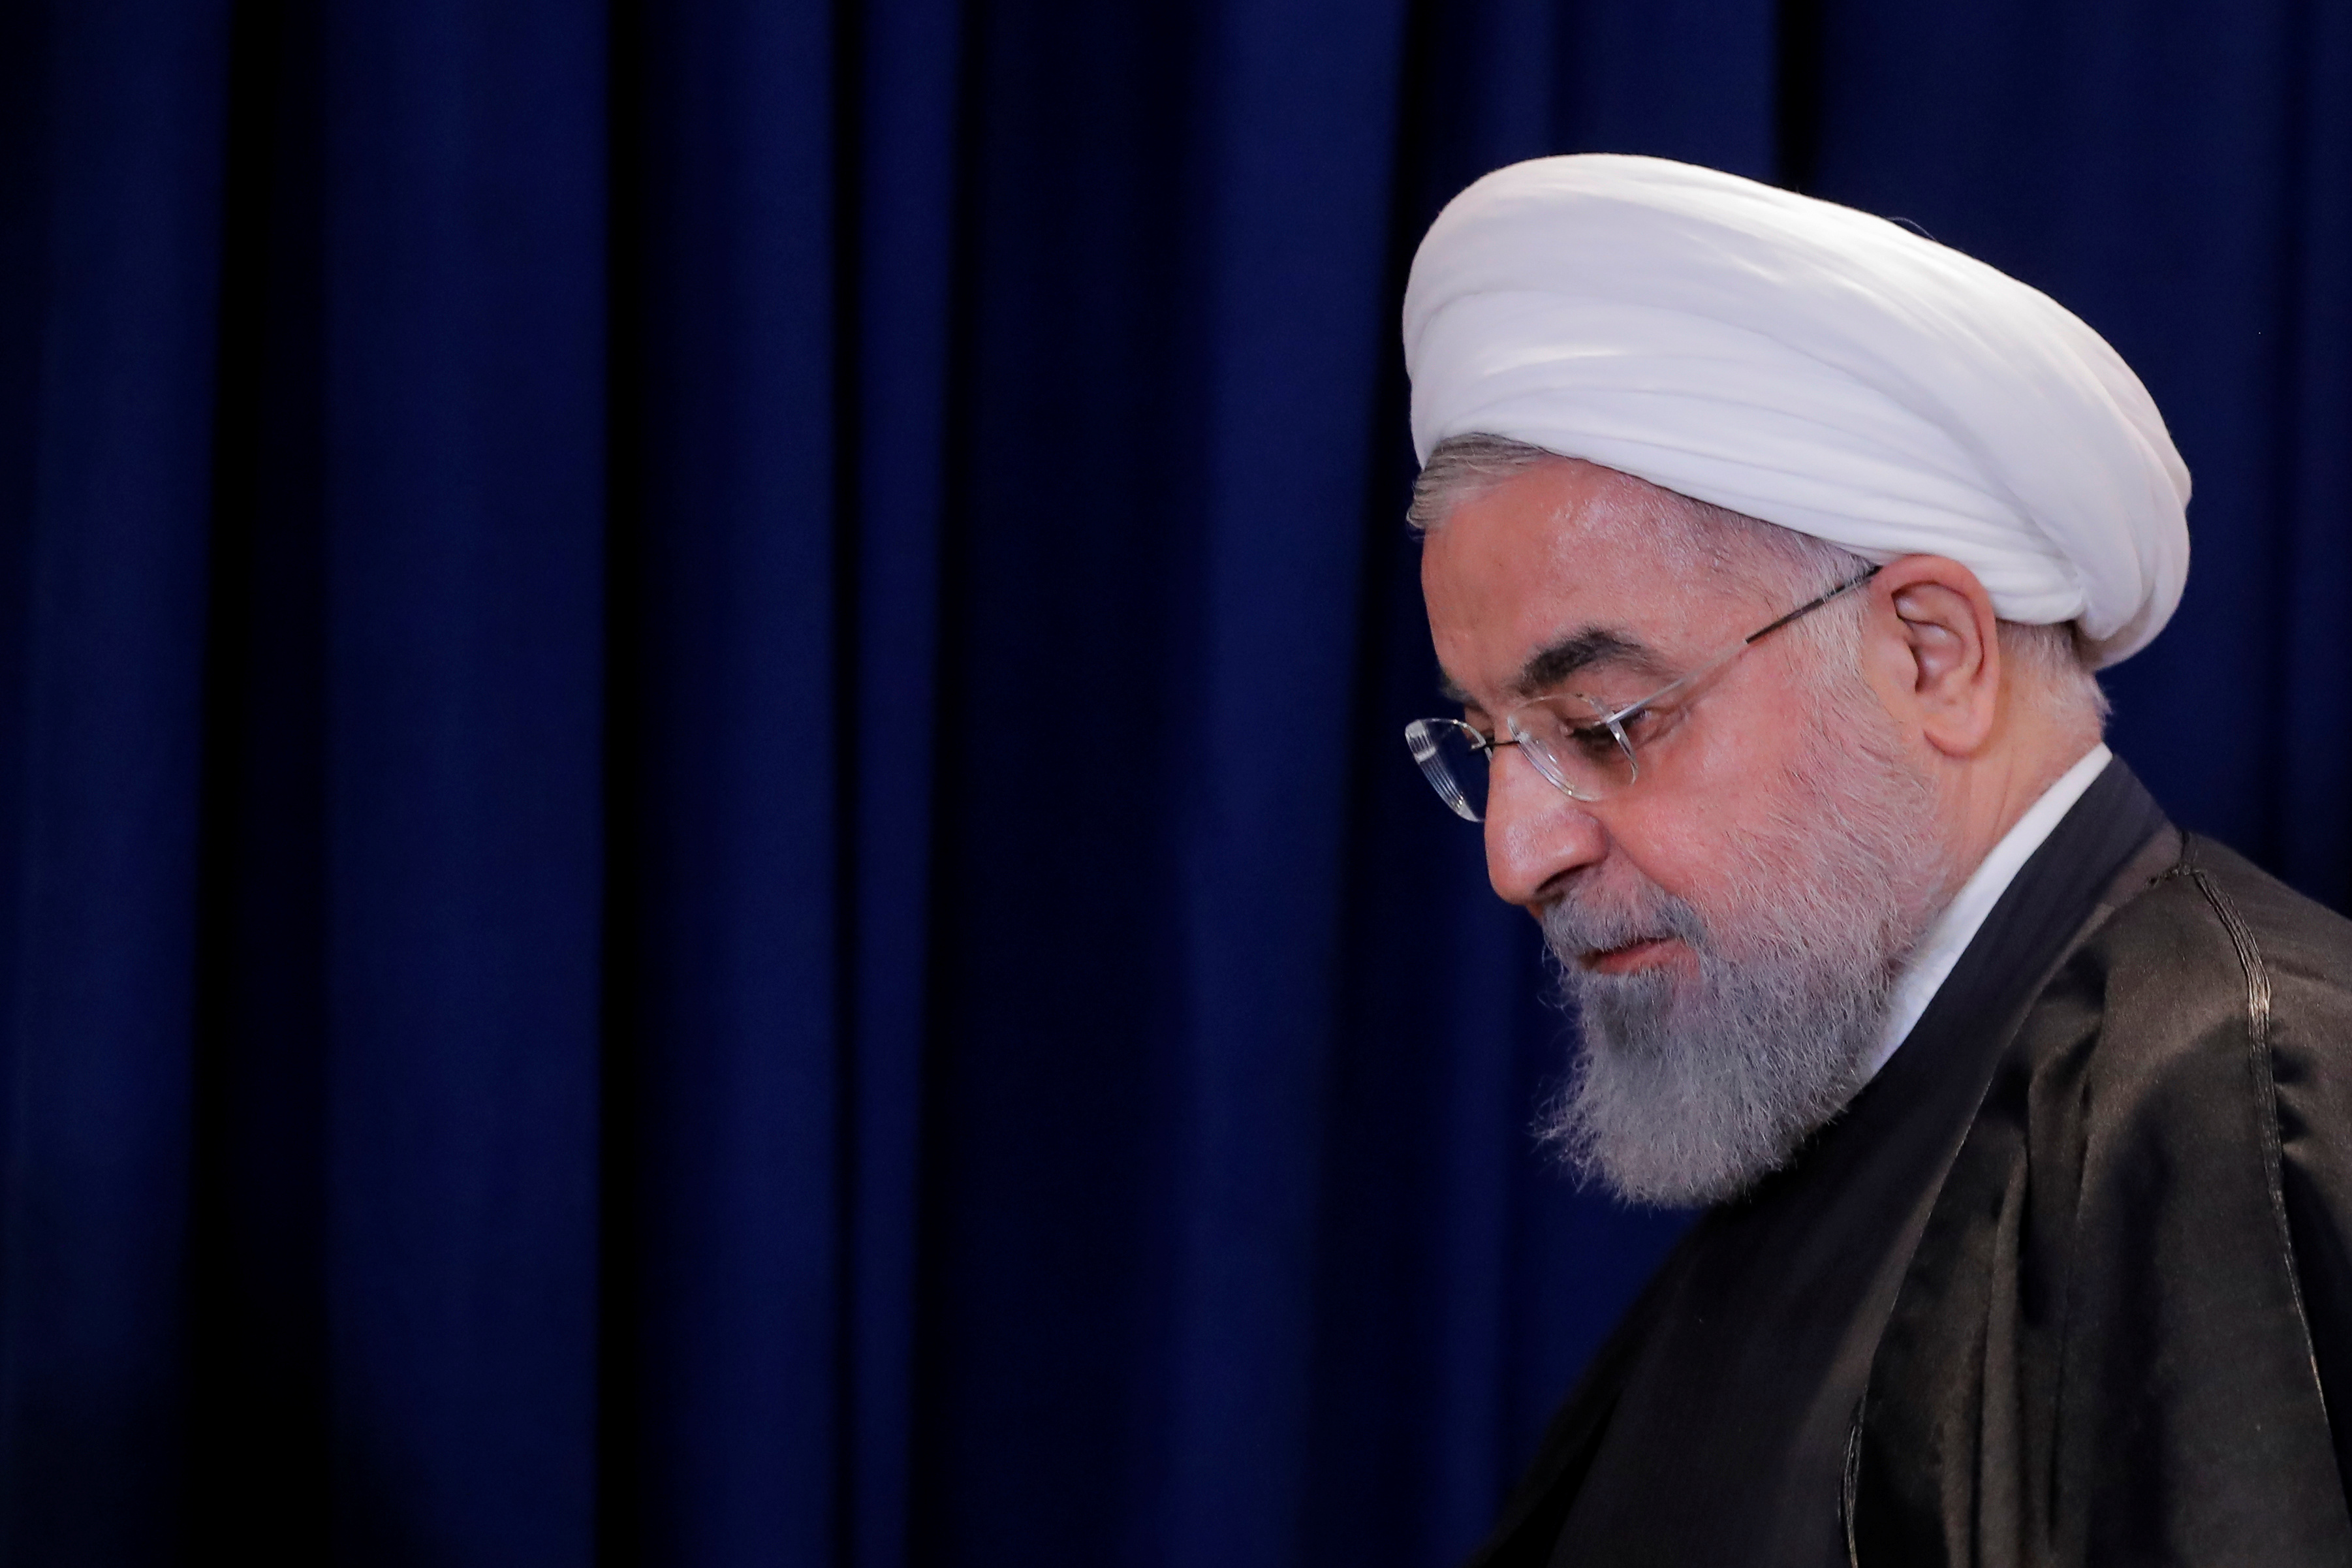 Iran's President Rouhani exits following a news conference in New York